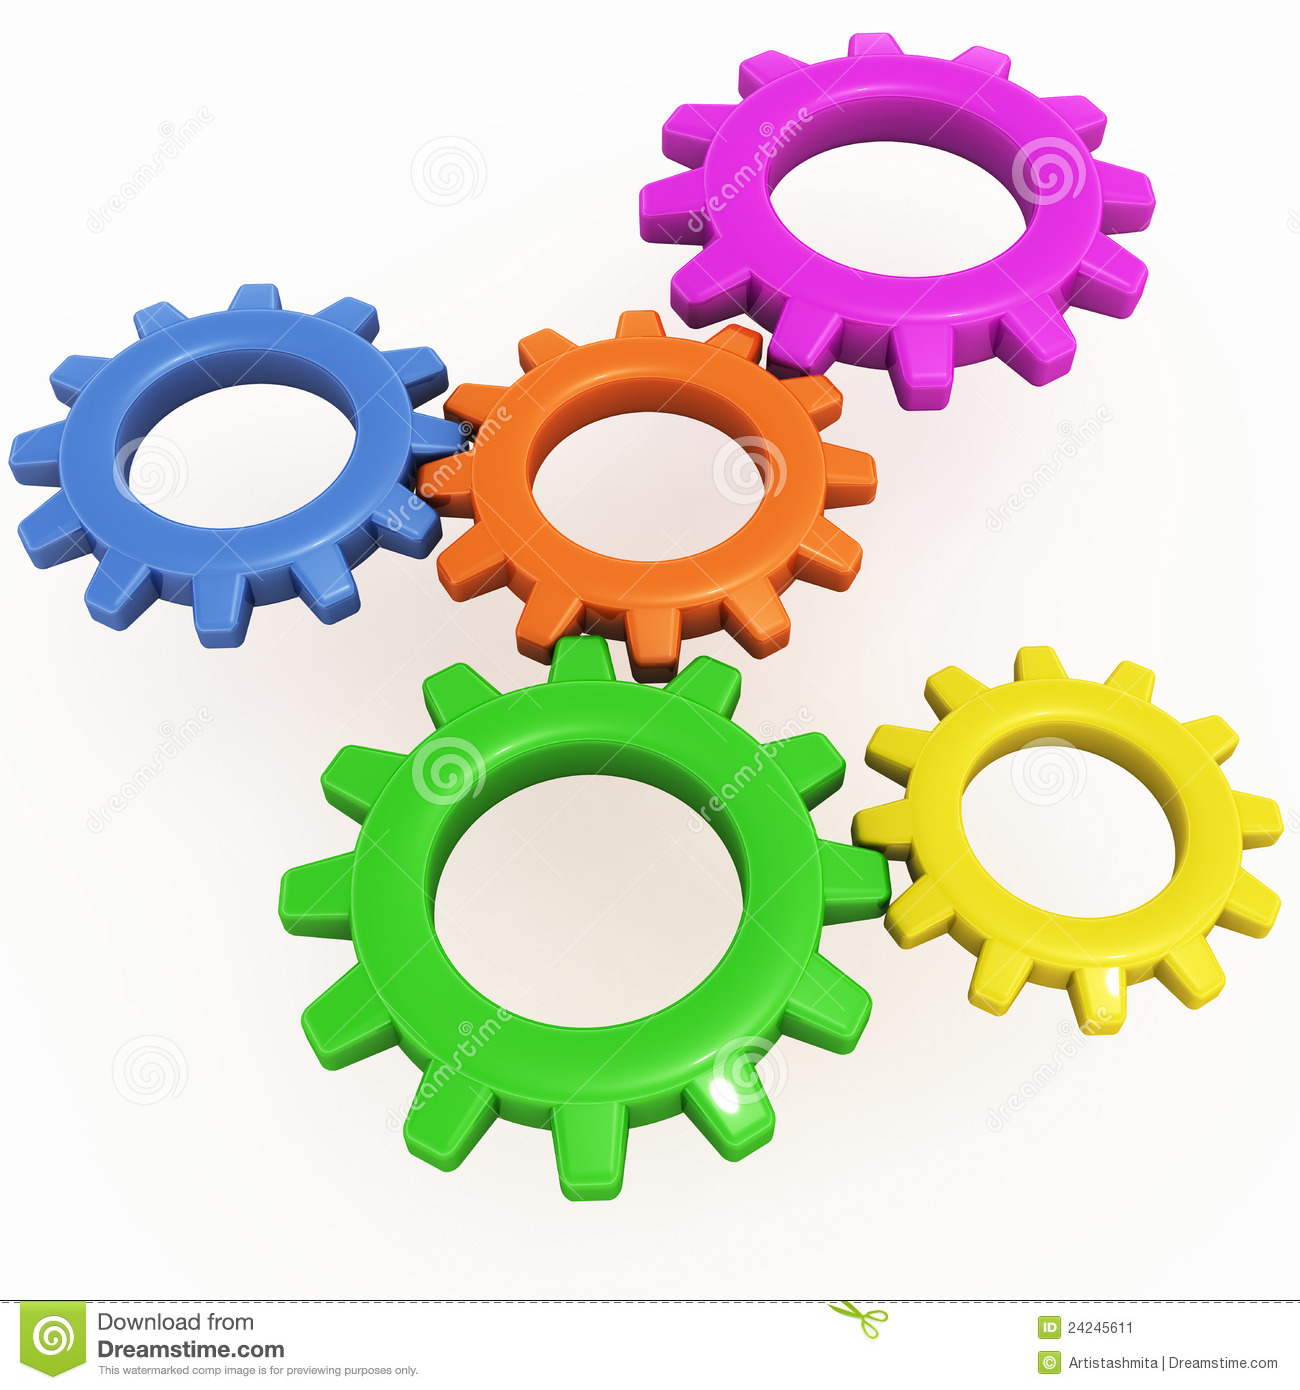 Clipart gears cogs.